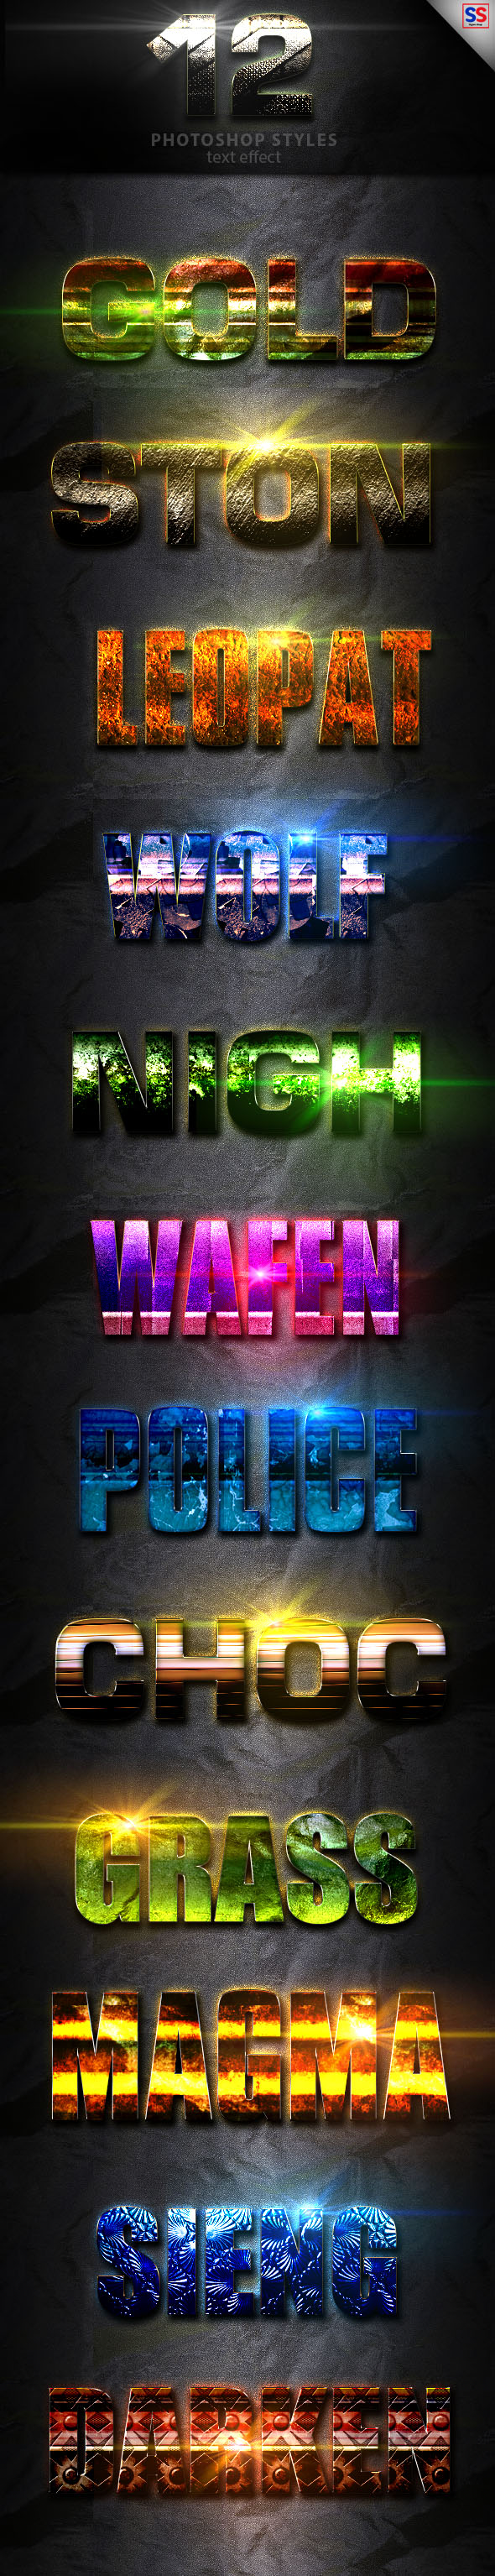 Light Photoshop Text Effect Vol 9 - Text Effects Styles